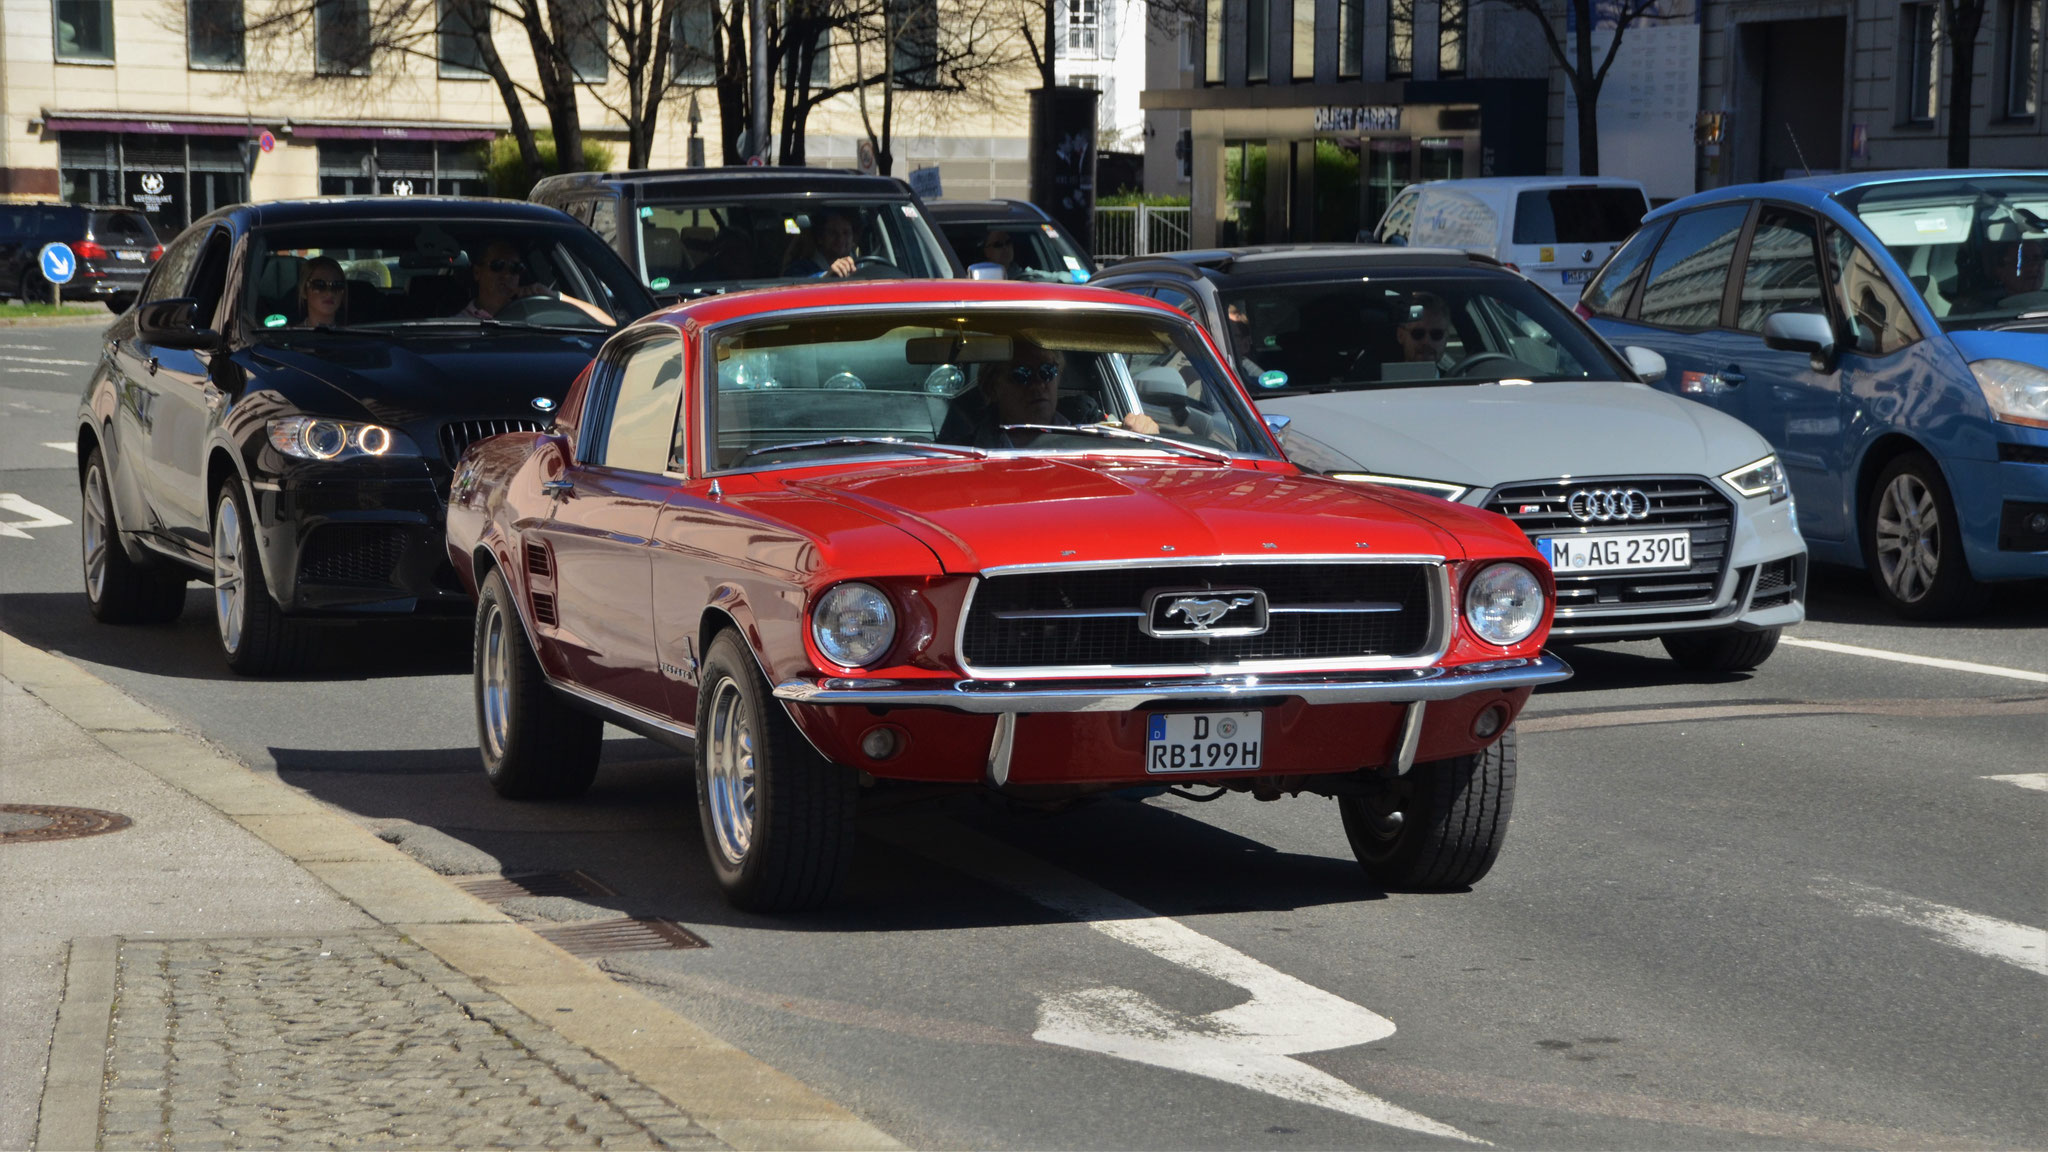 Mustang I - D-RB-199H